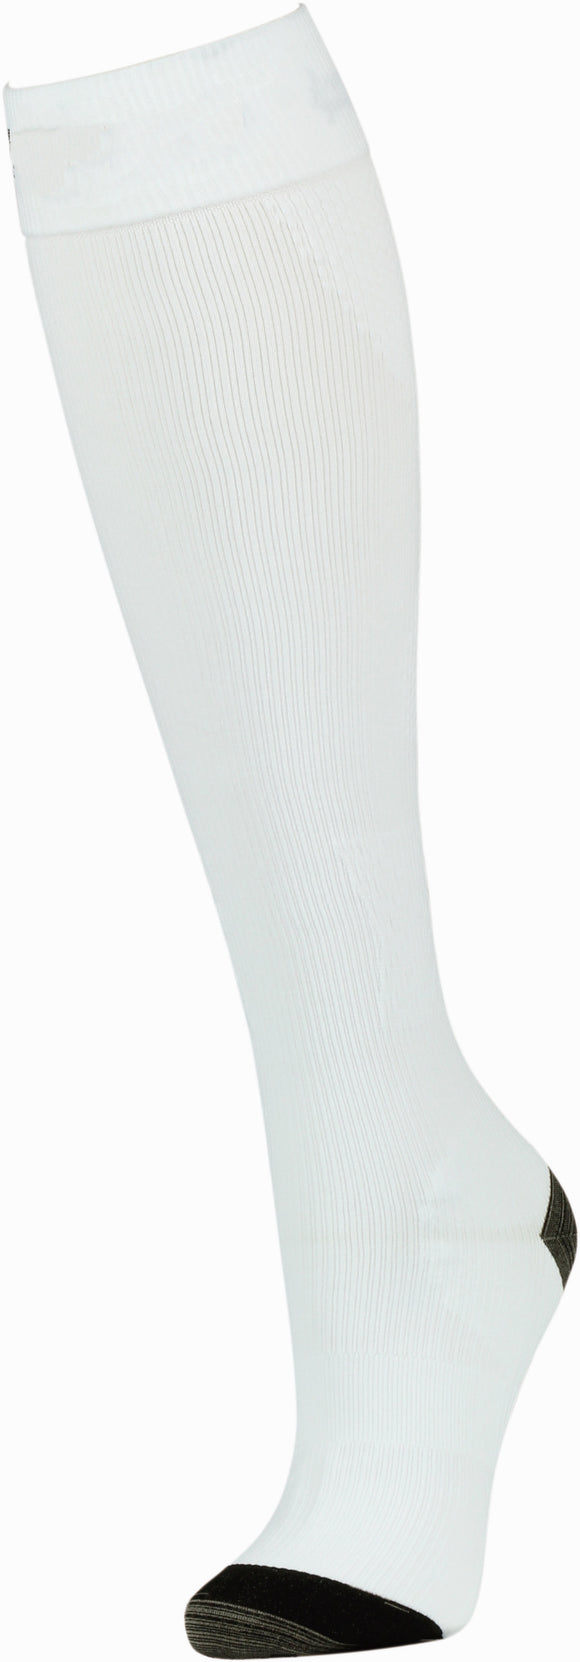 Athletic Compression Socks 15-20 mmHg: Opal White